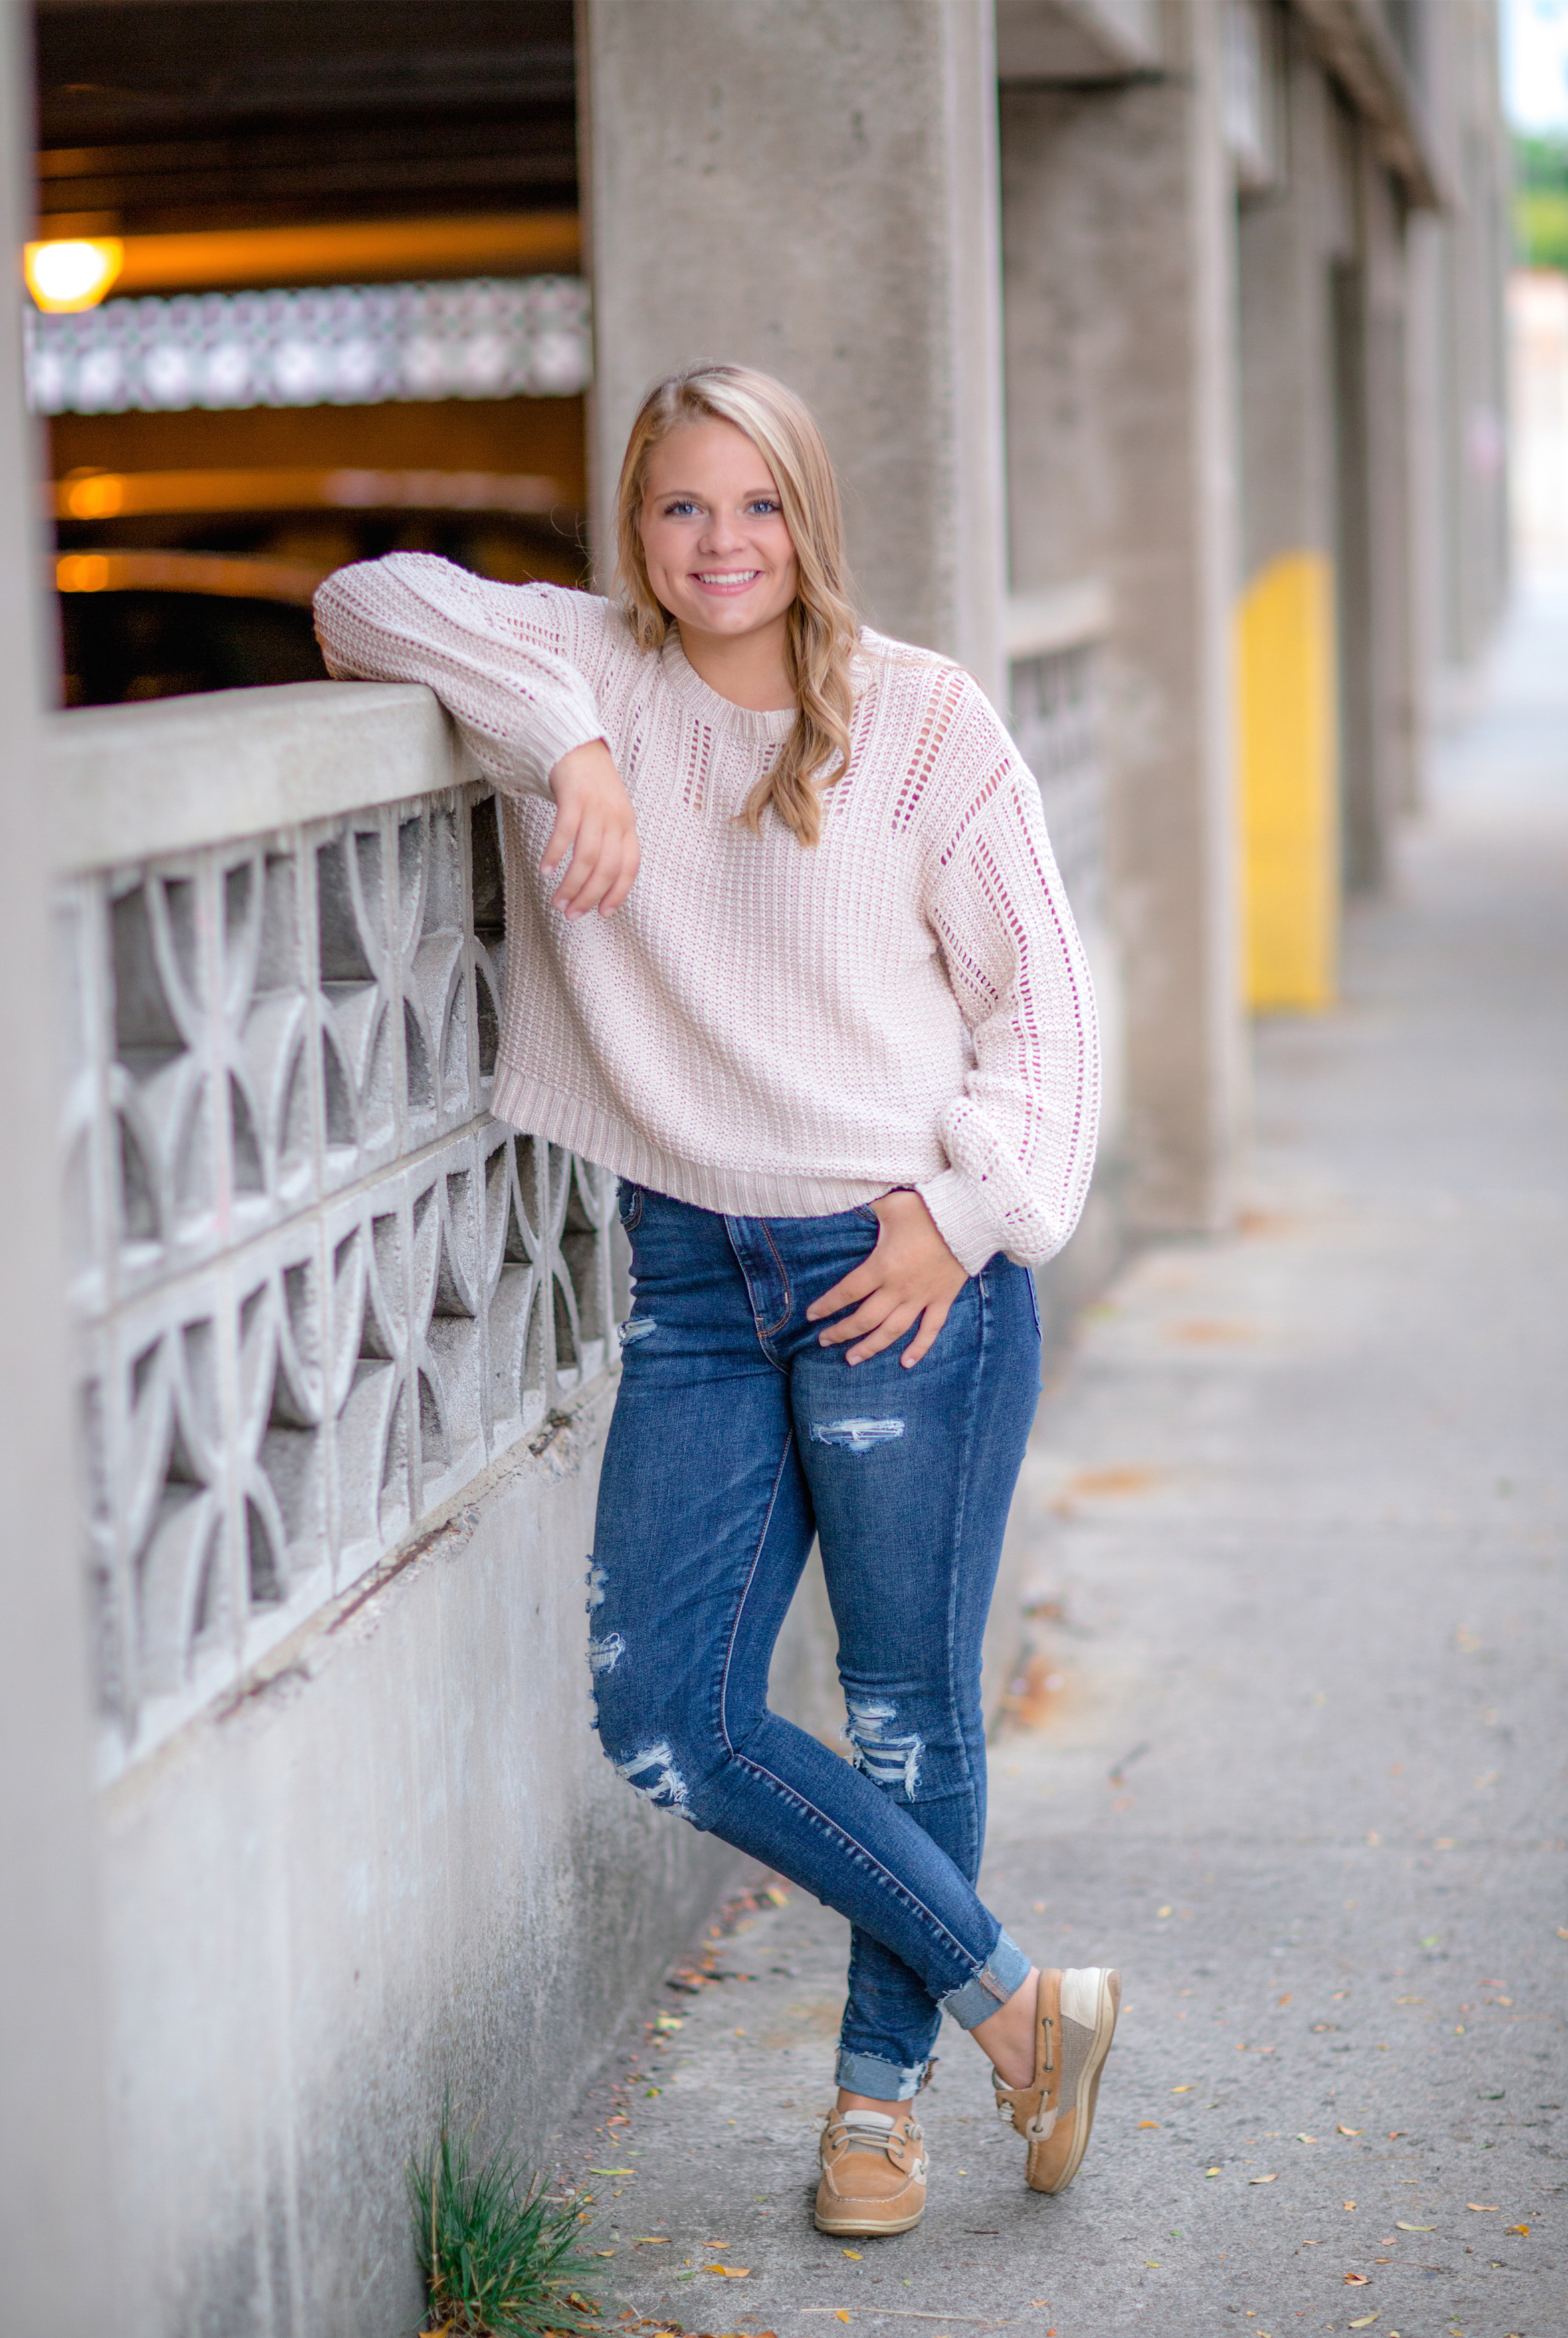 Alexis_Scalise_Senior_15.jpg